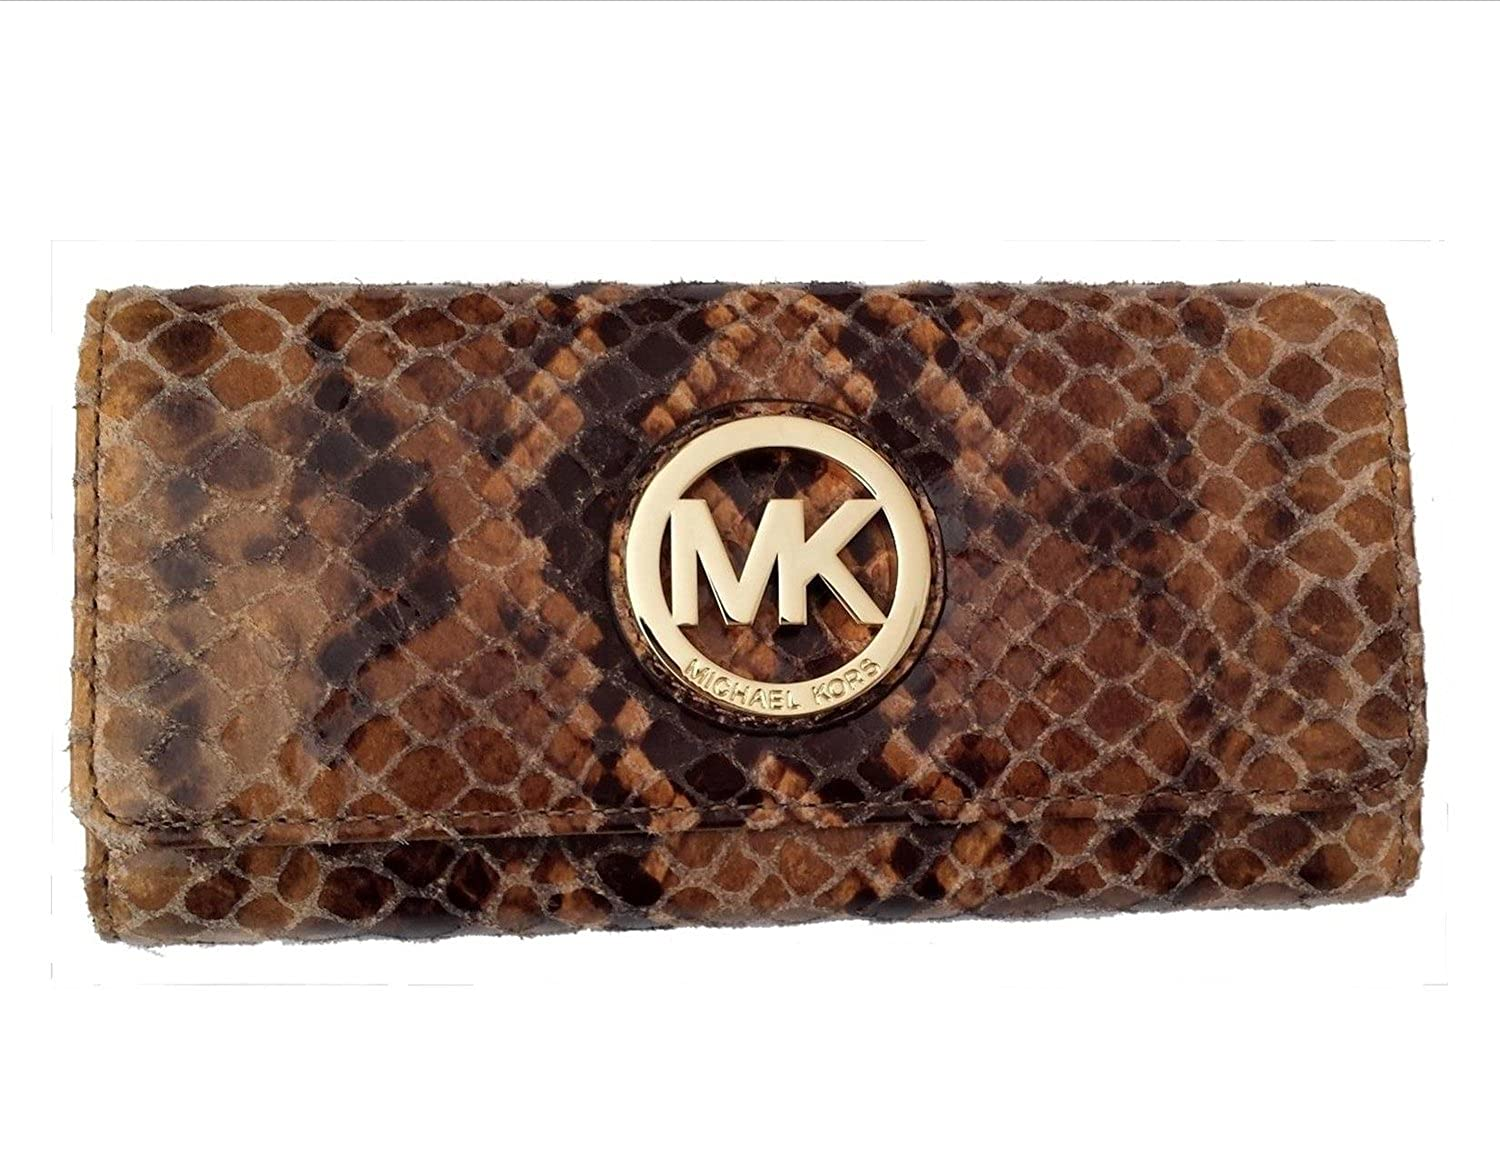 46d1a6c3432f Amazon.com: Michael Kors Fulton Flap Continental Sand Embossed Leather  Wallet: Shoes